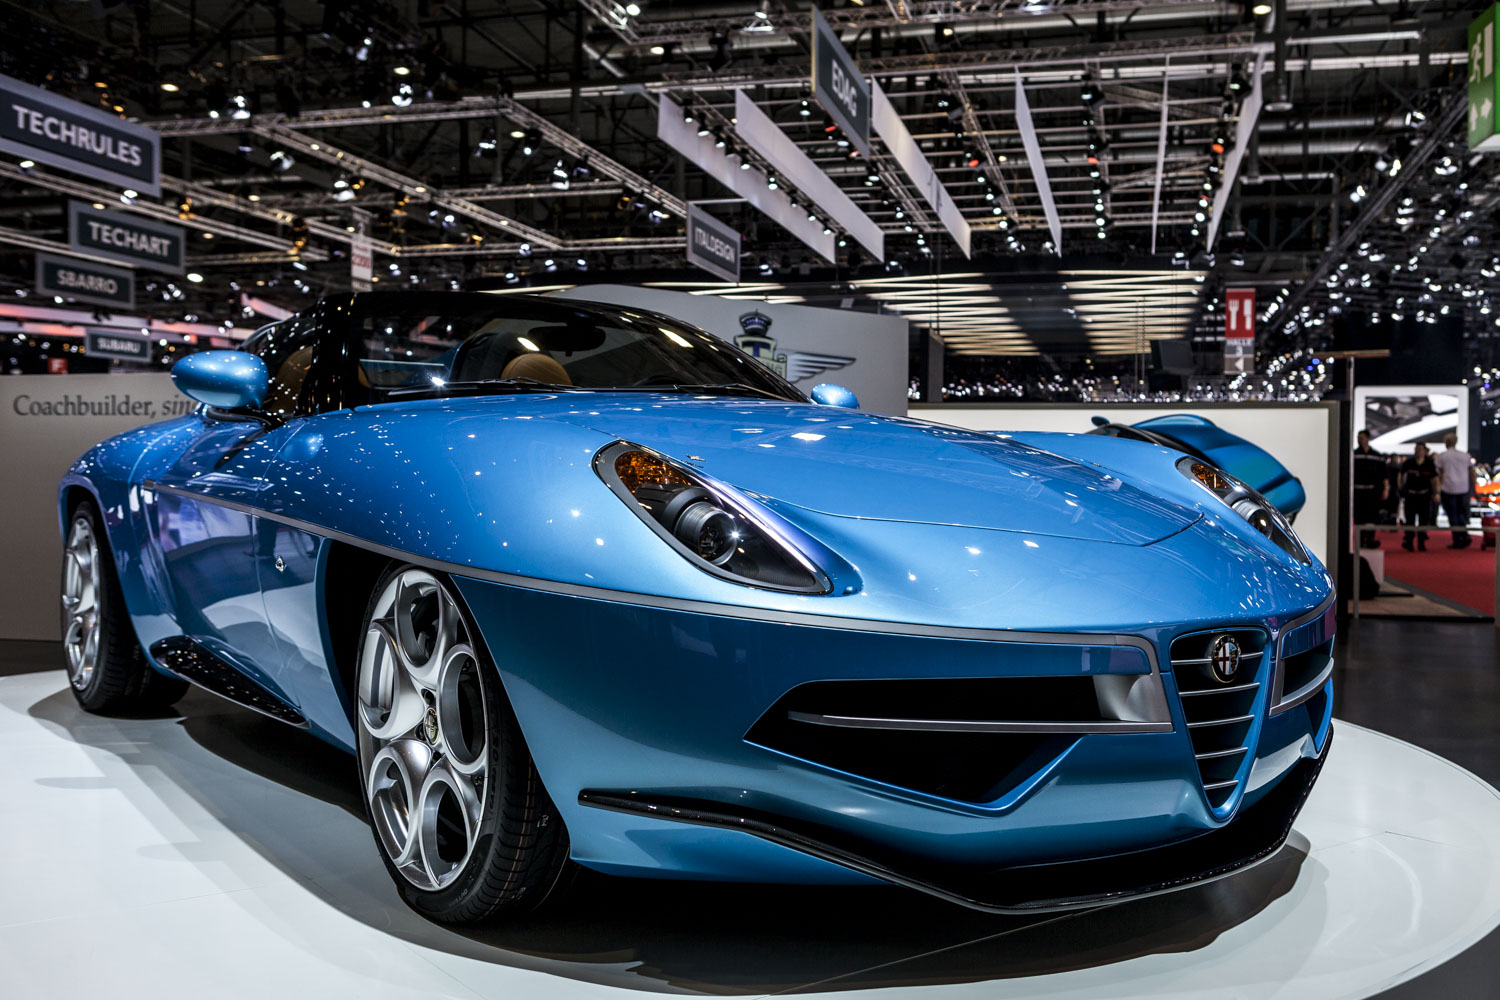 Alfa Disco Volante For Sale >> Geneva 2016: Carrozzeria Touring Disco Volante